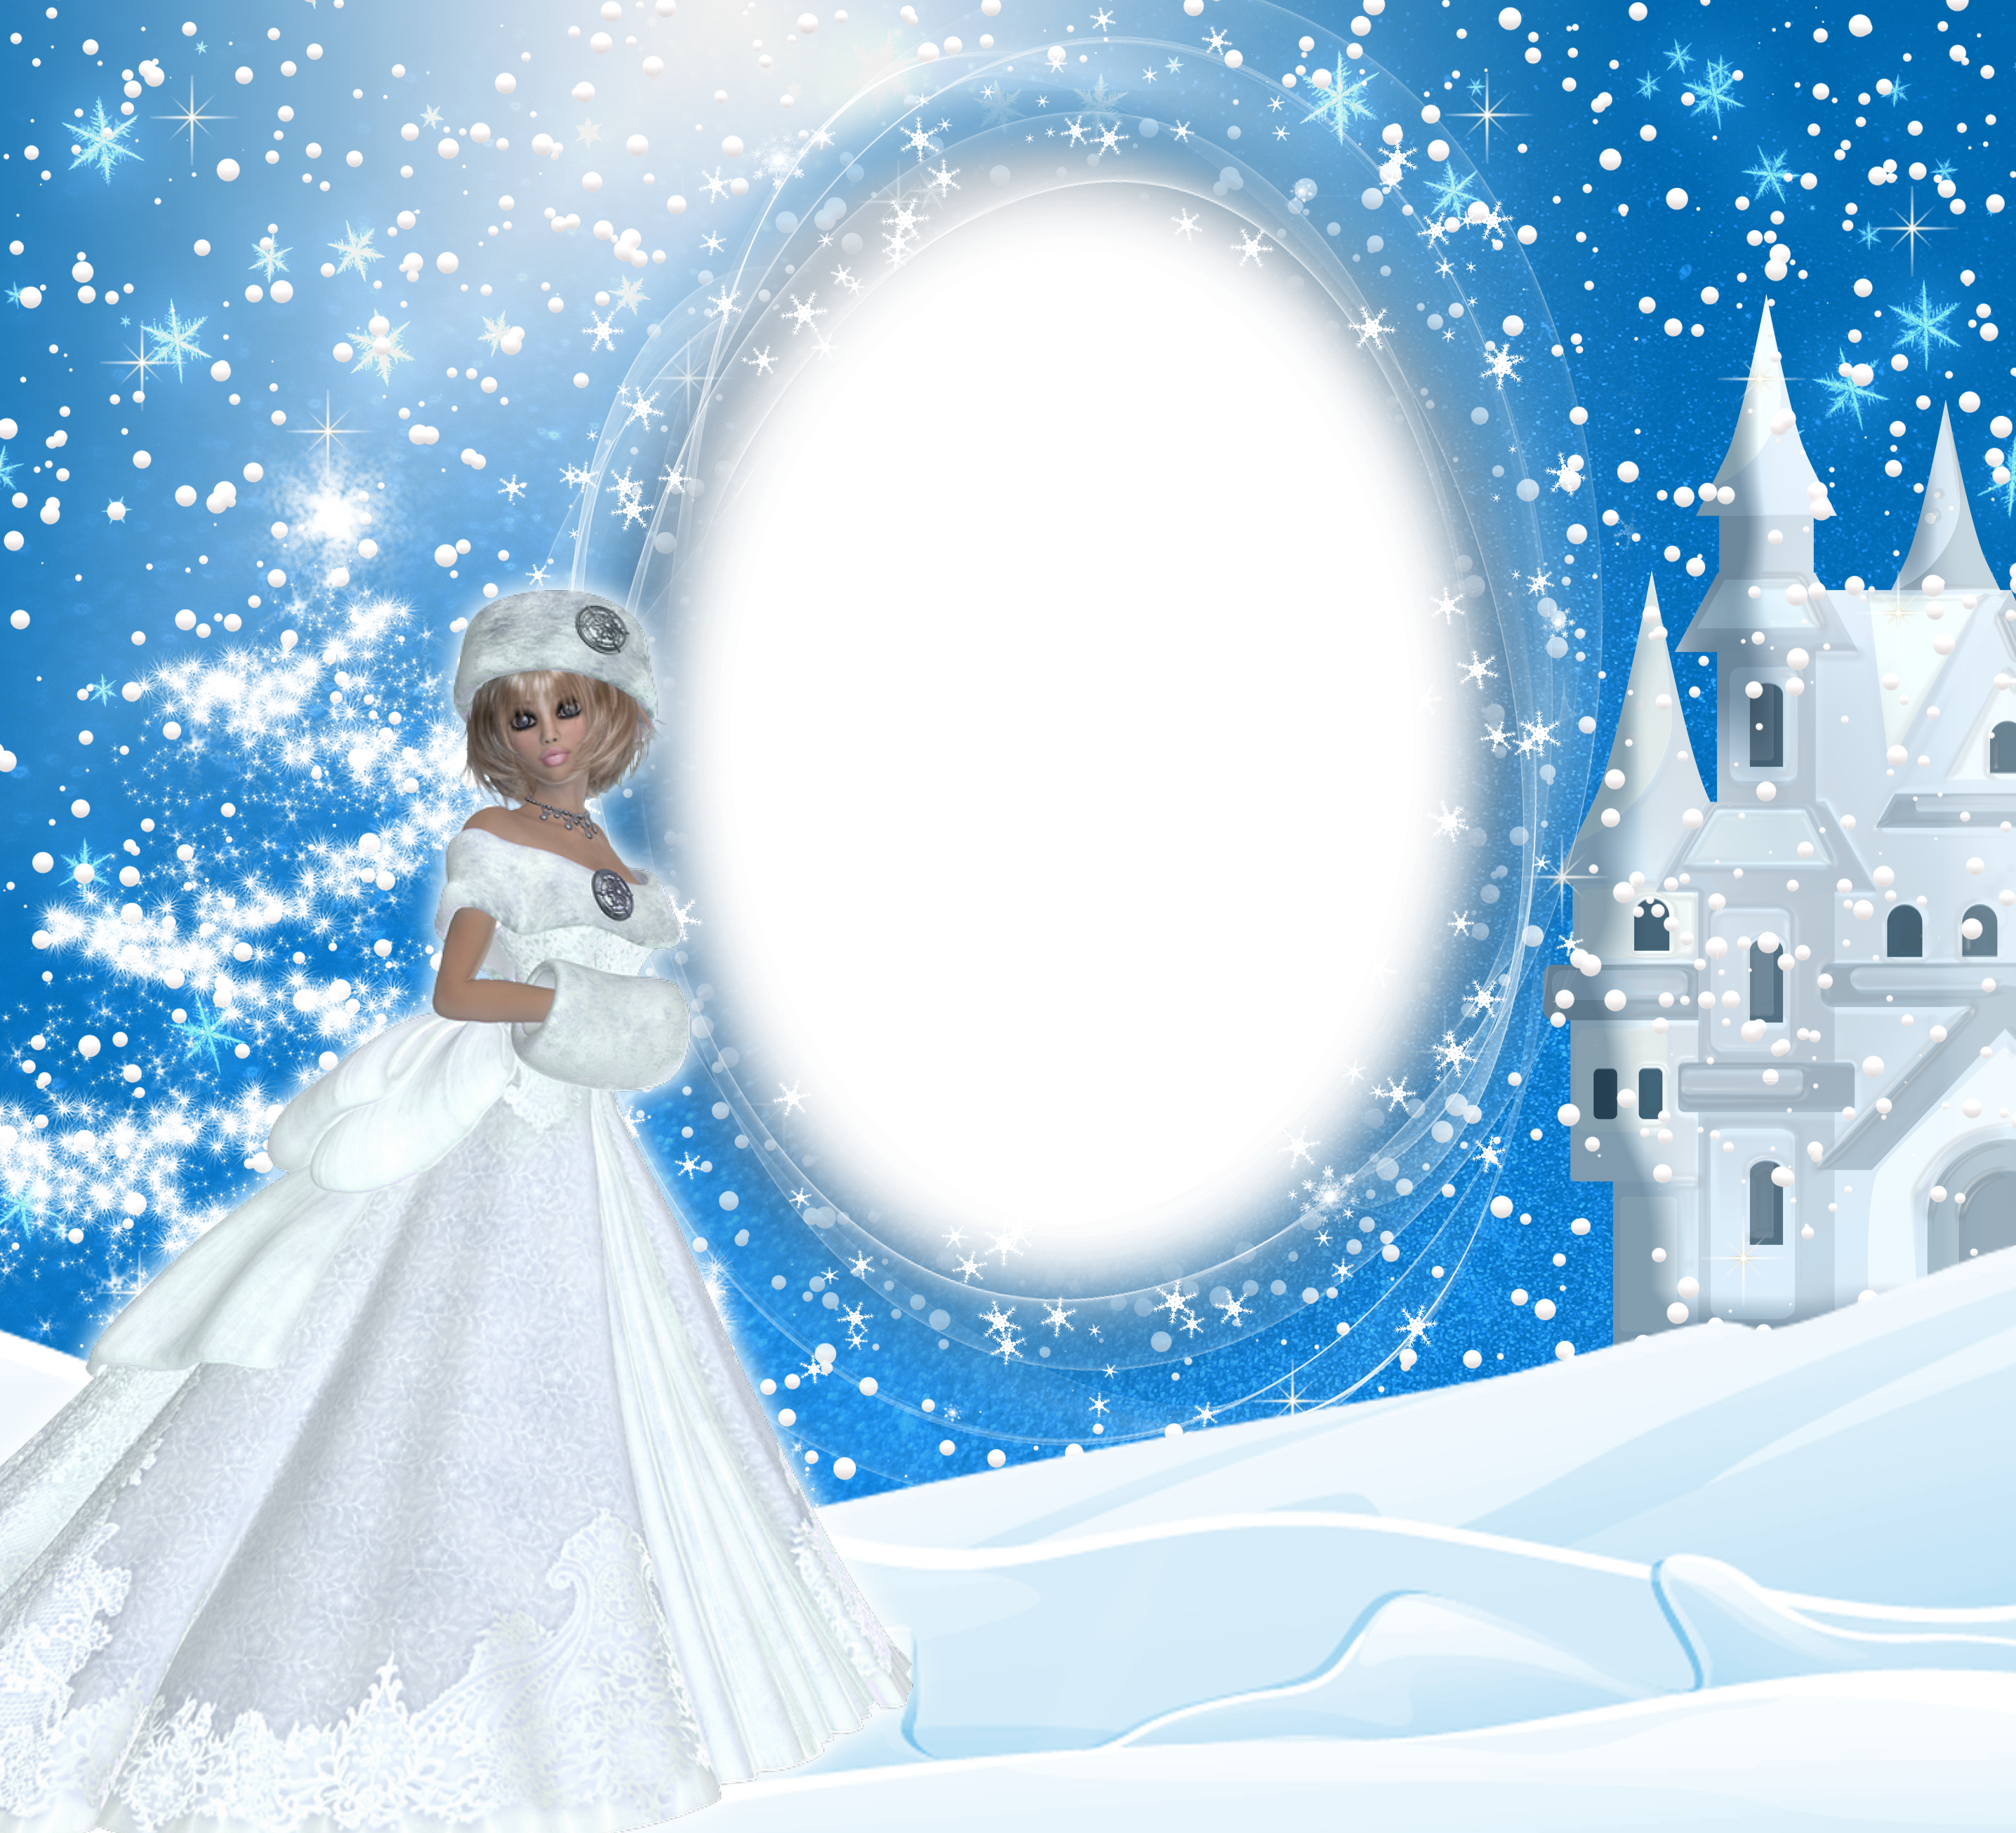 banner download Winter lady png frame. Snow borders clipart.